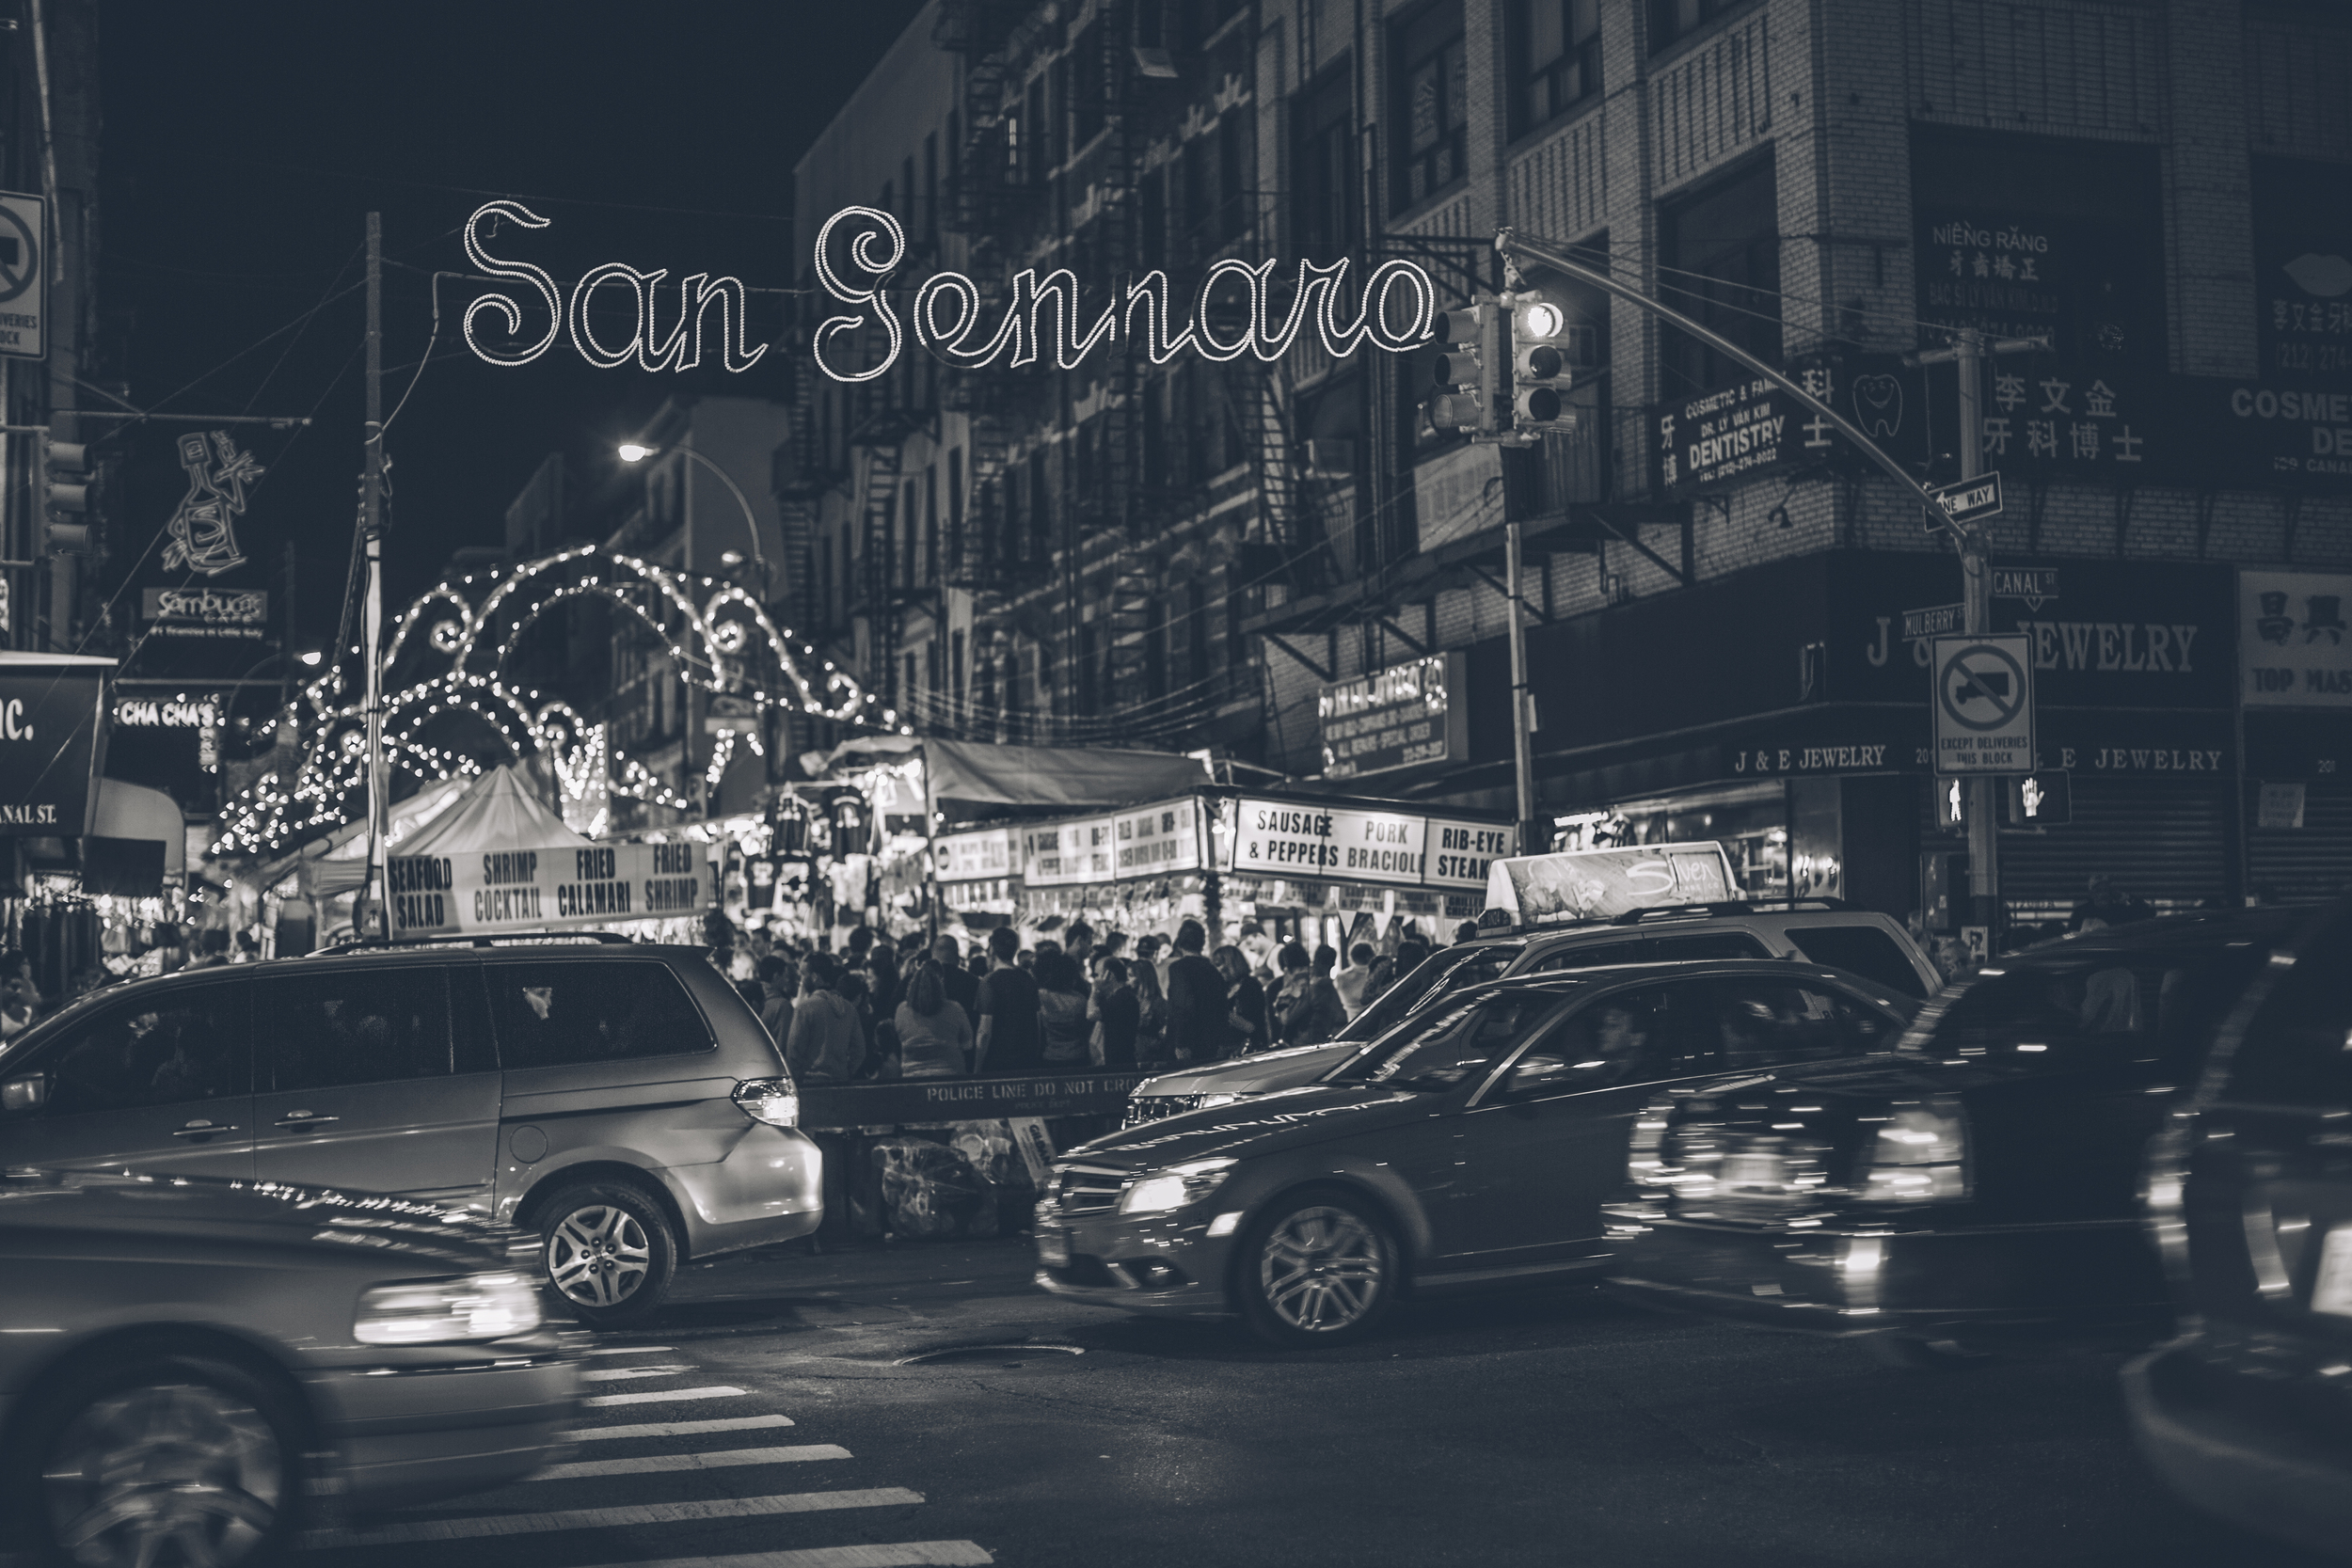 san gennaro sign.jpg